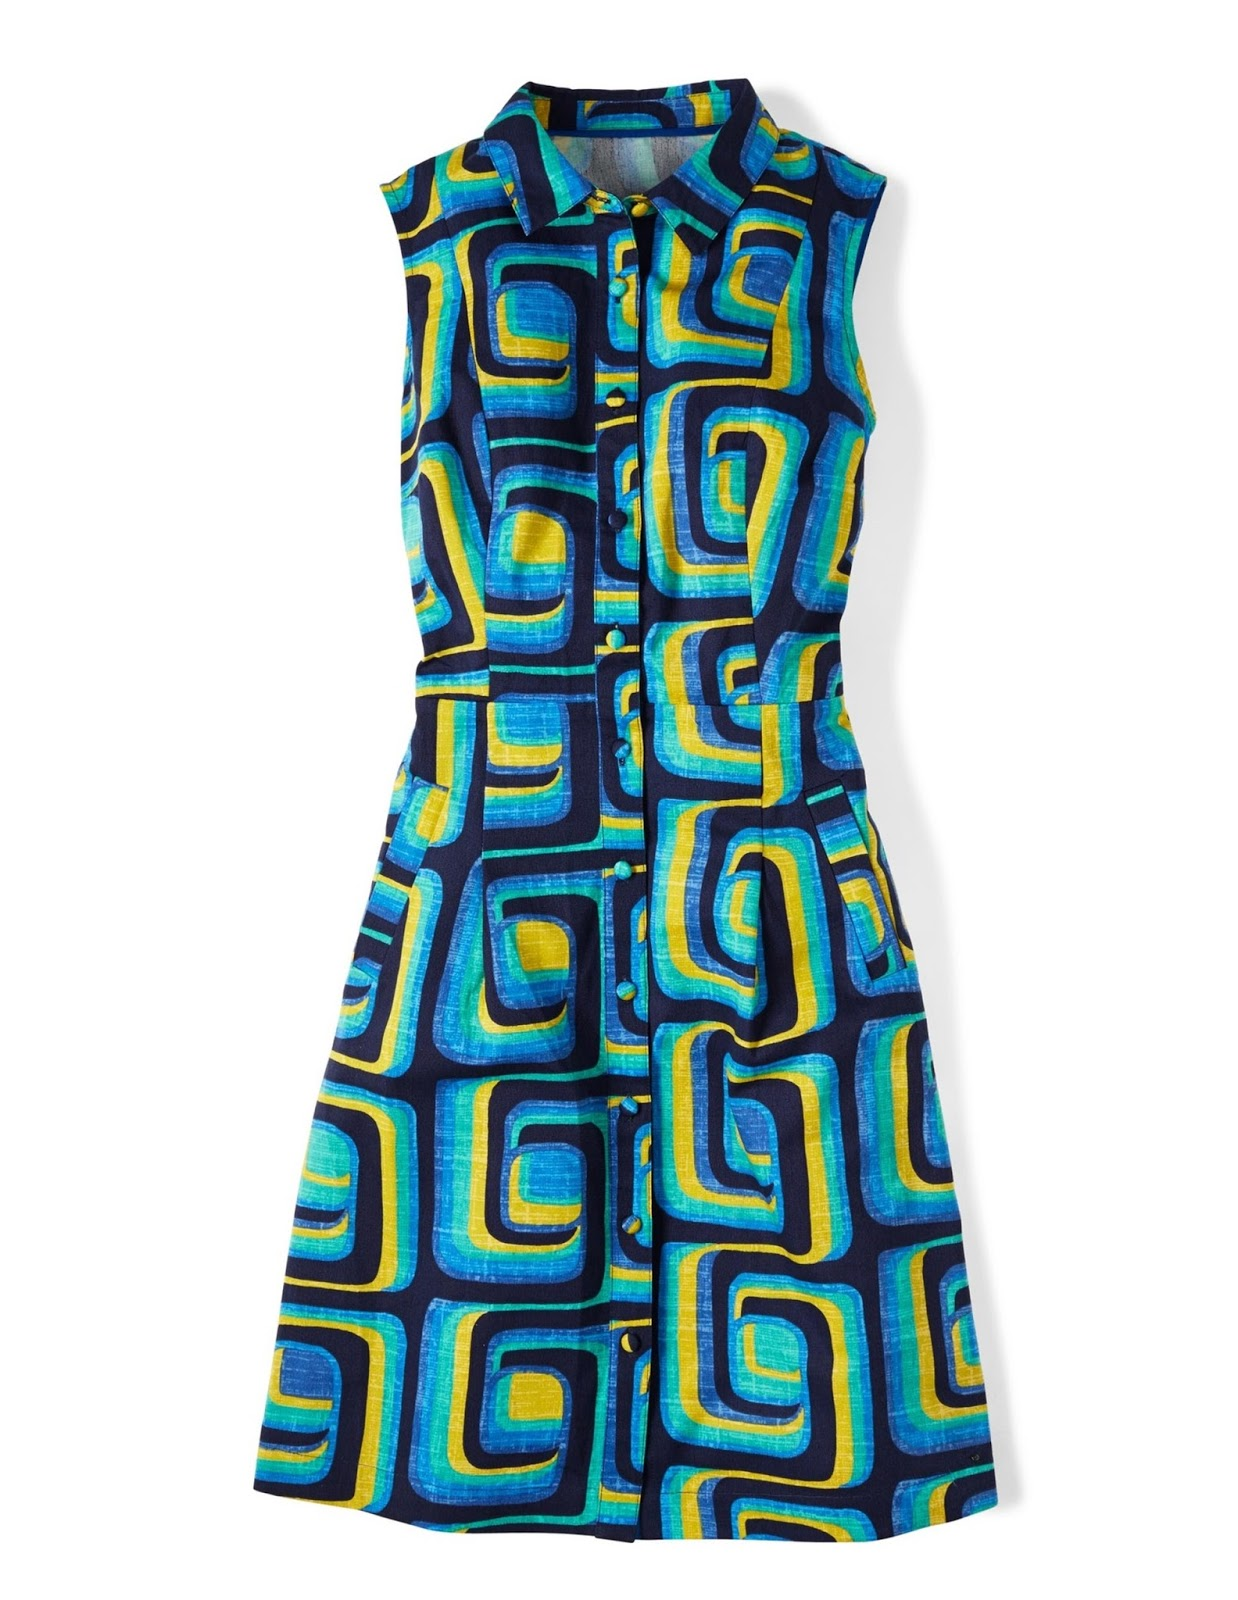 A million dresses uk fashion and lifestyle blog for Boden mid season sale 2015